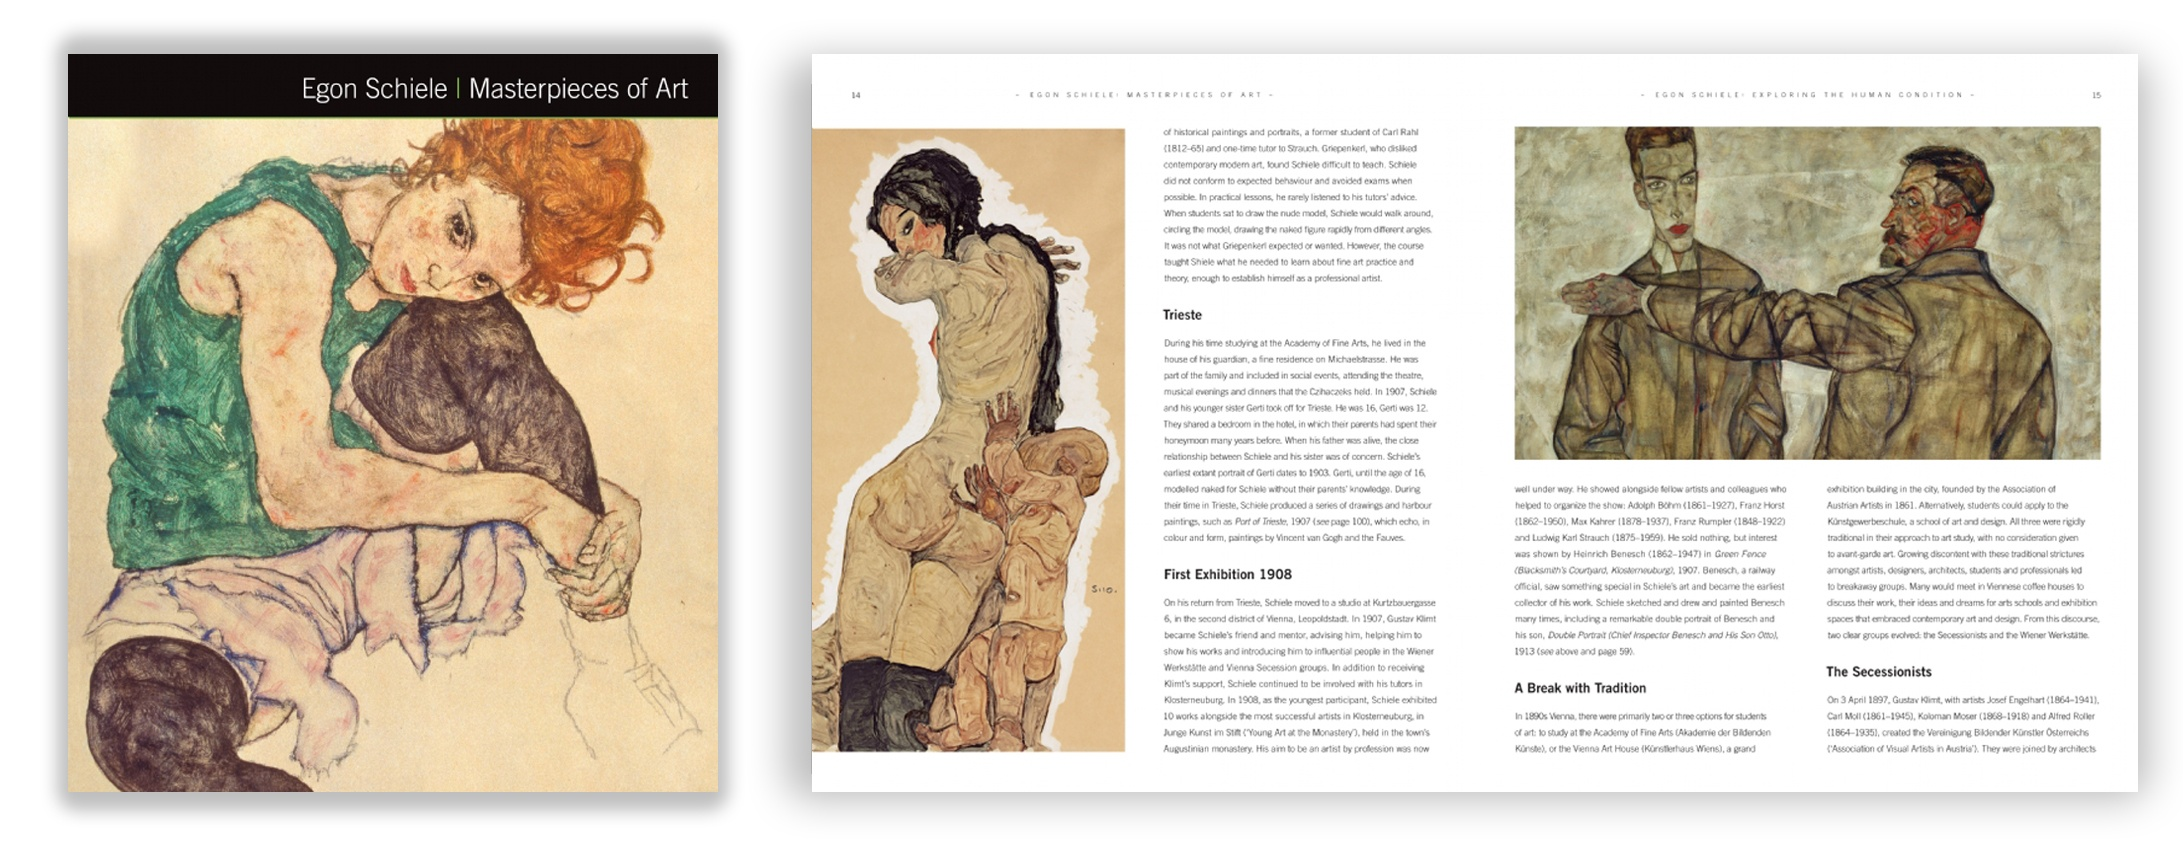 Schiele-masterpieces-art-spread